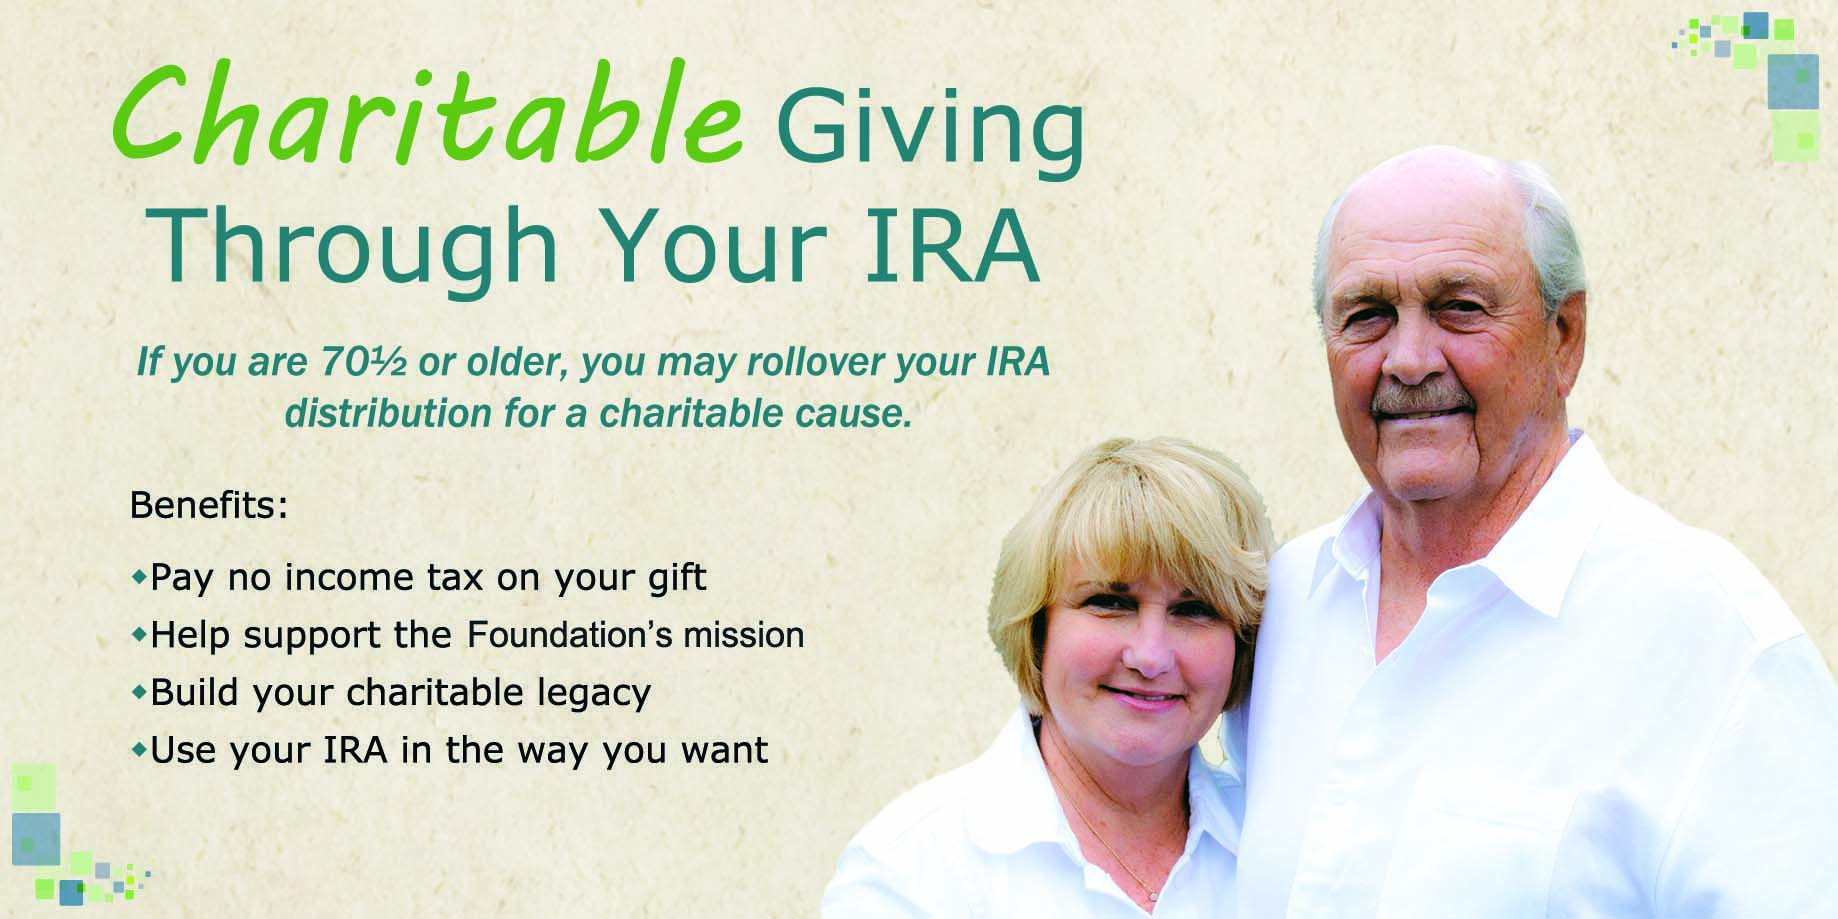 Charitable Giving Through Your IRA